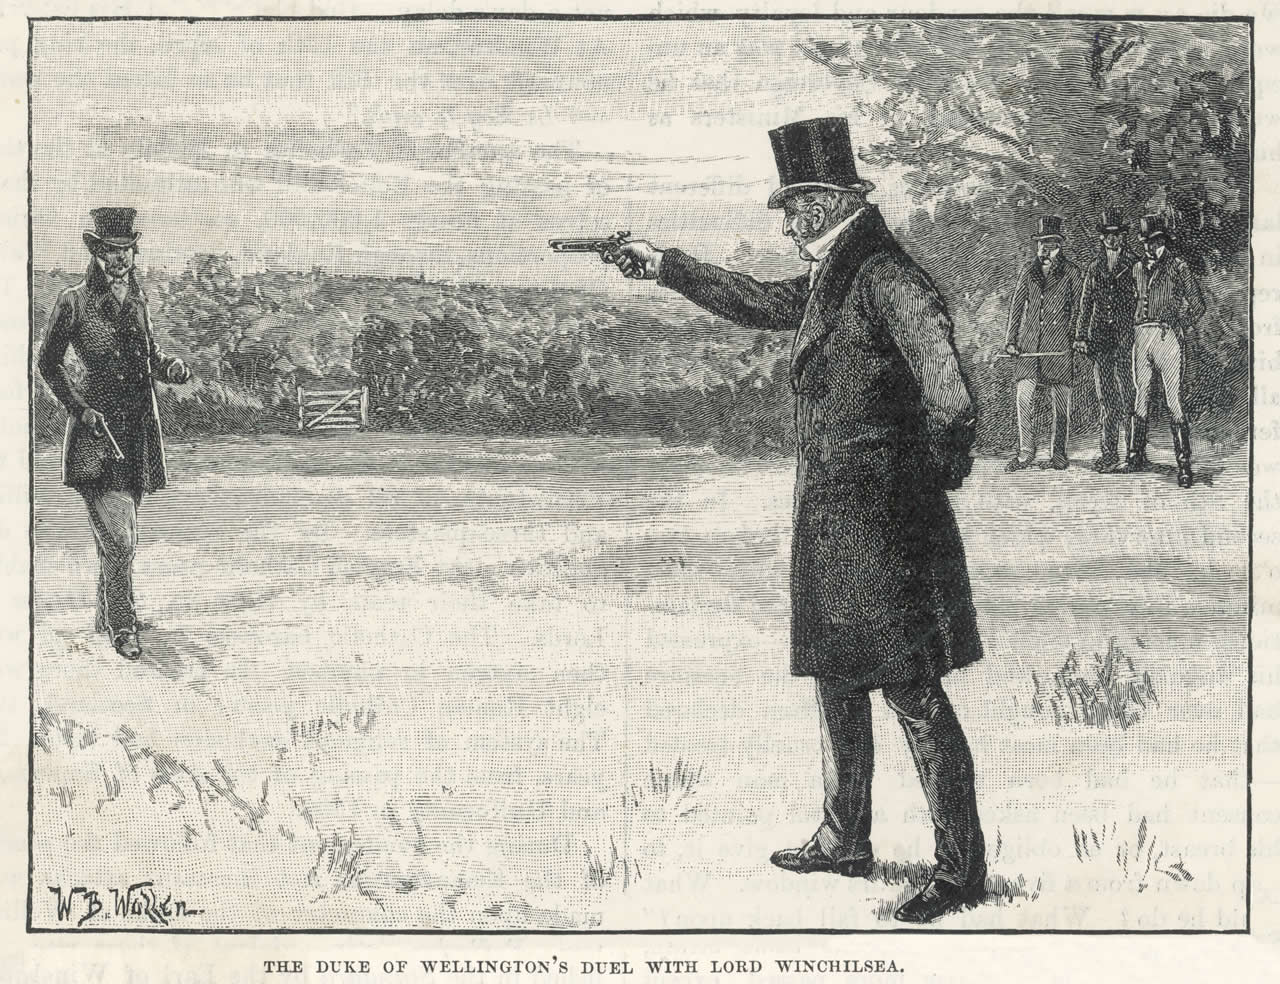 The Duke of Wellington and Earl of Winchilsea dueling at Battersea Fields